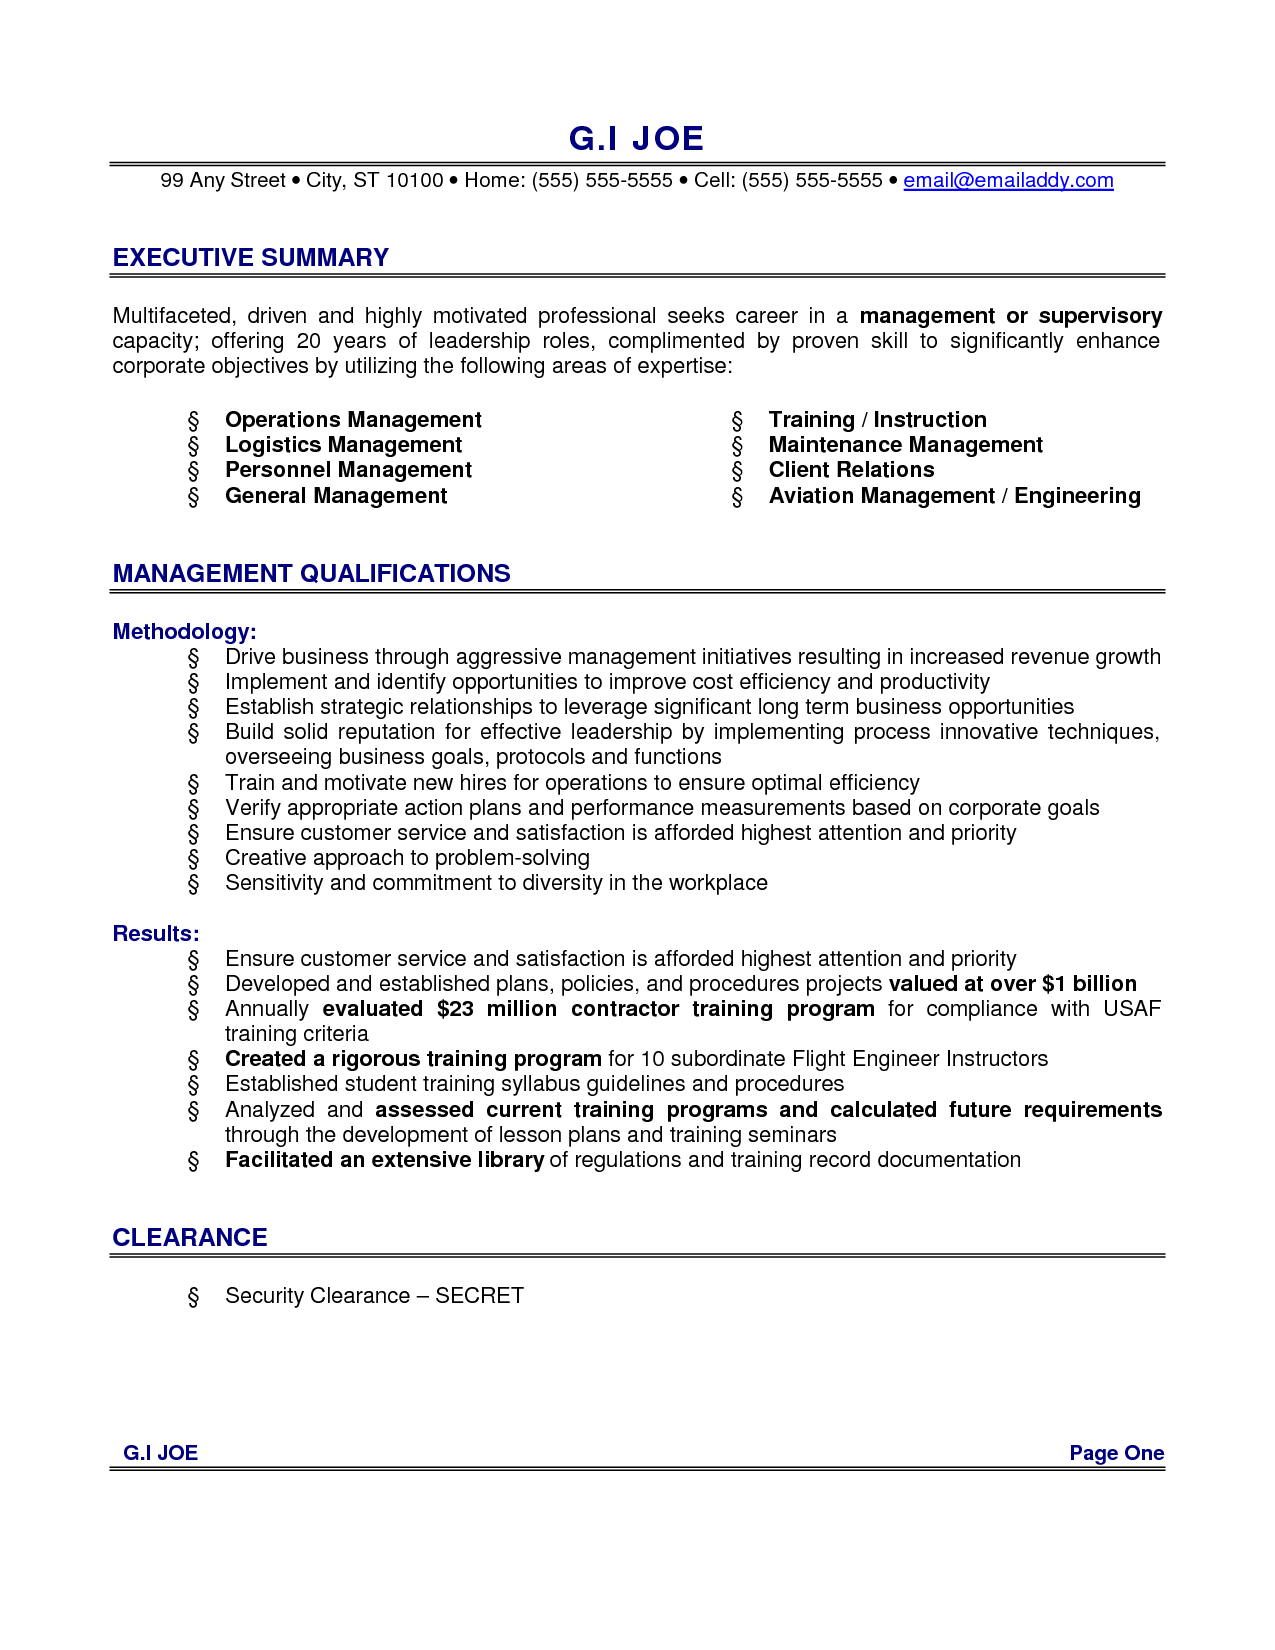 Executive Summary Example Resume Goalblockety